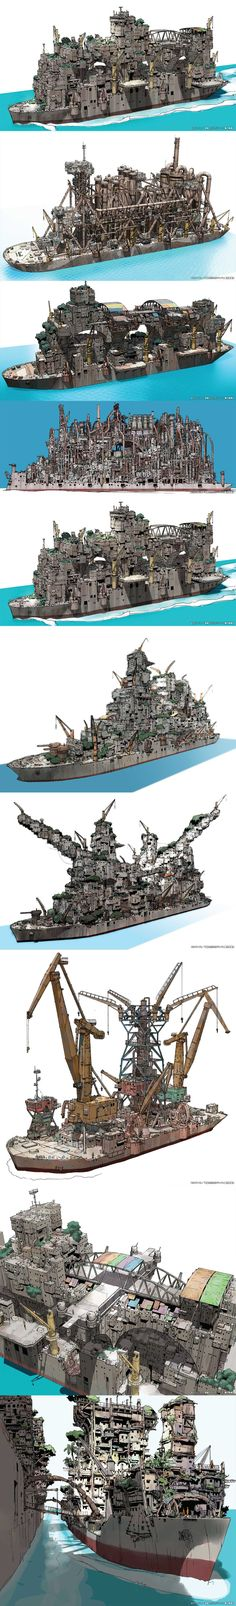 "Ships from ""Gargantia on the Verdurous Planet"" #город #карабль #конструктор"